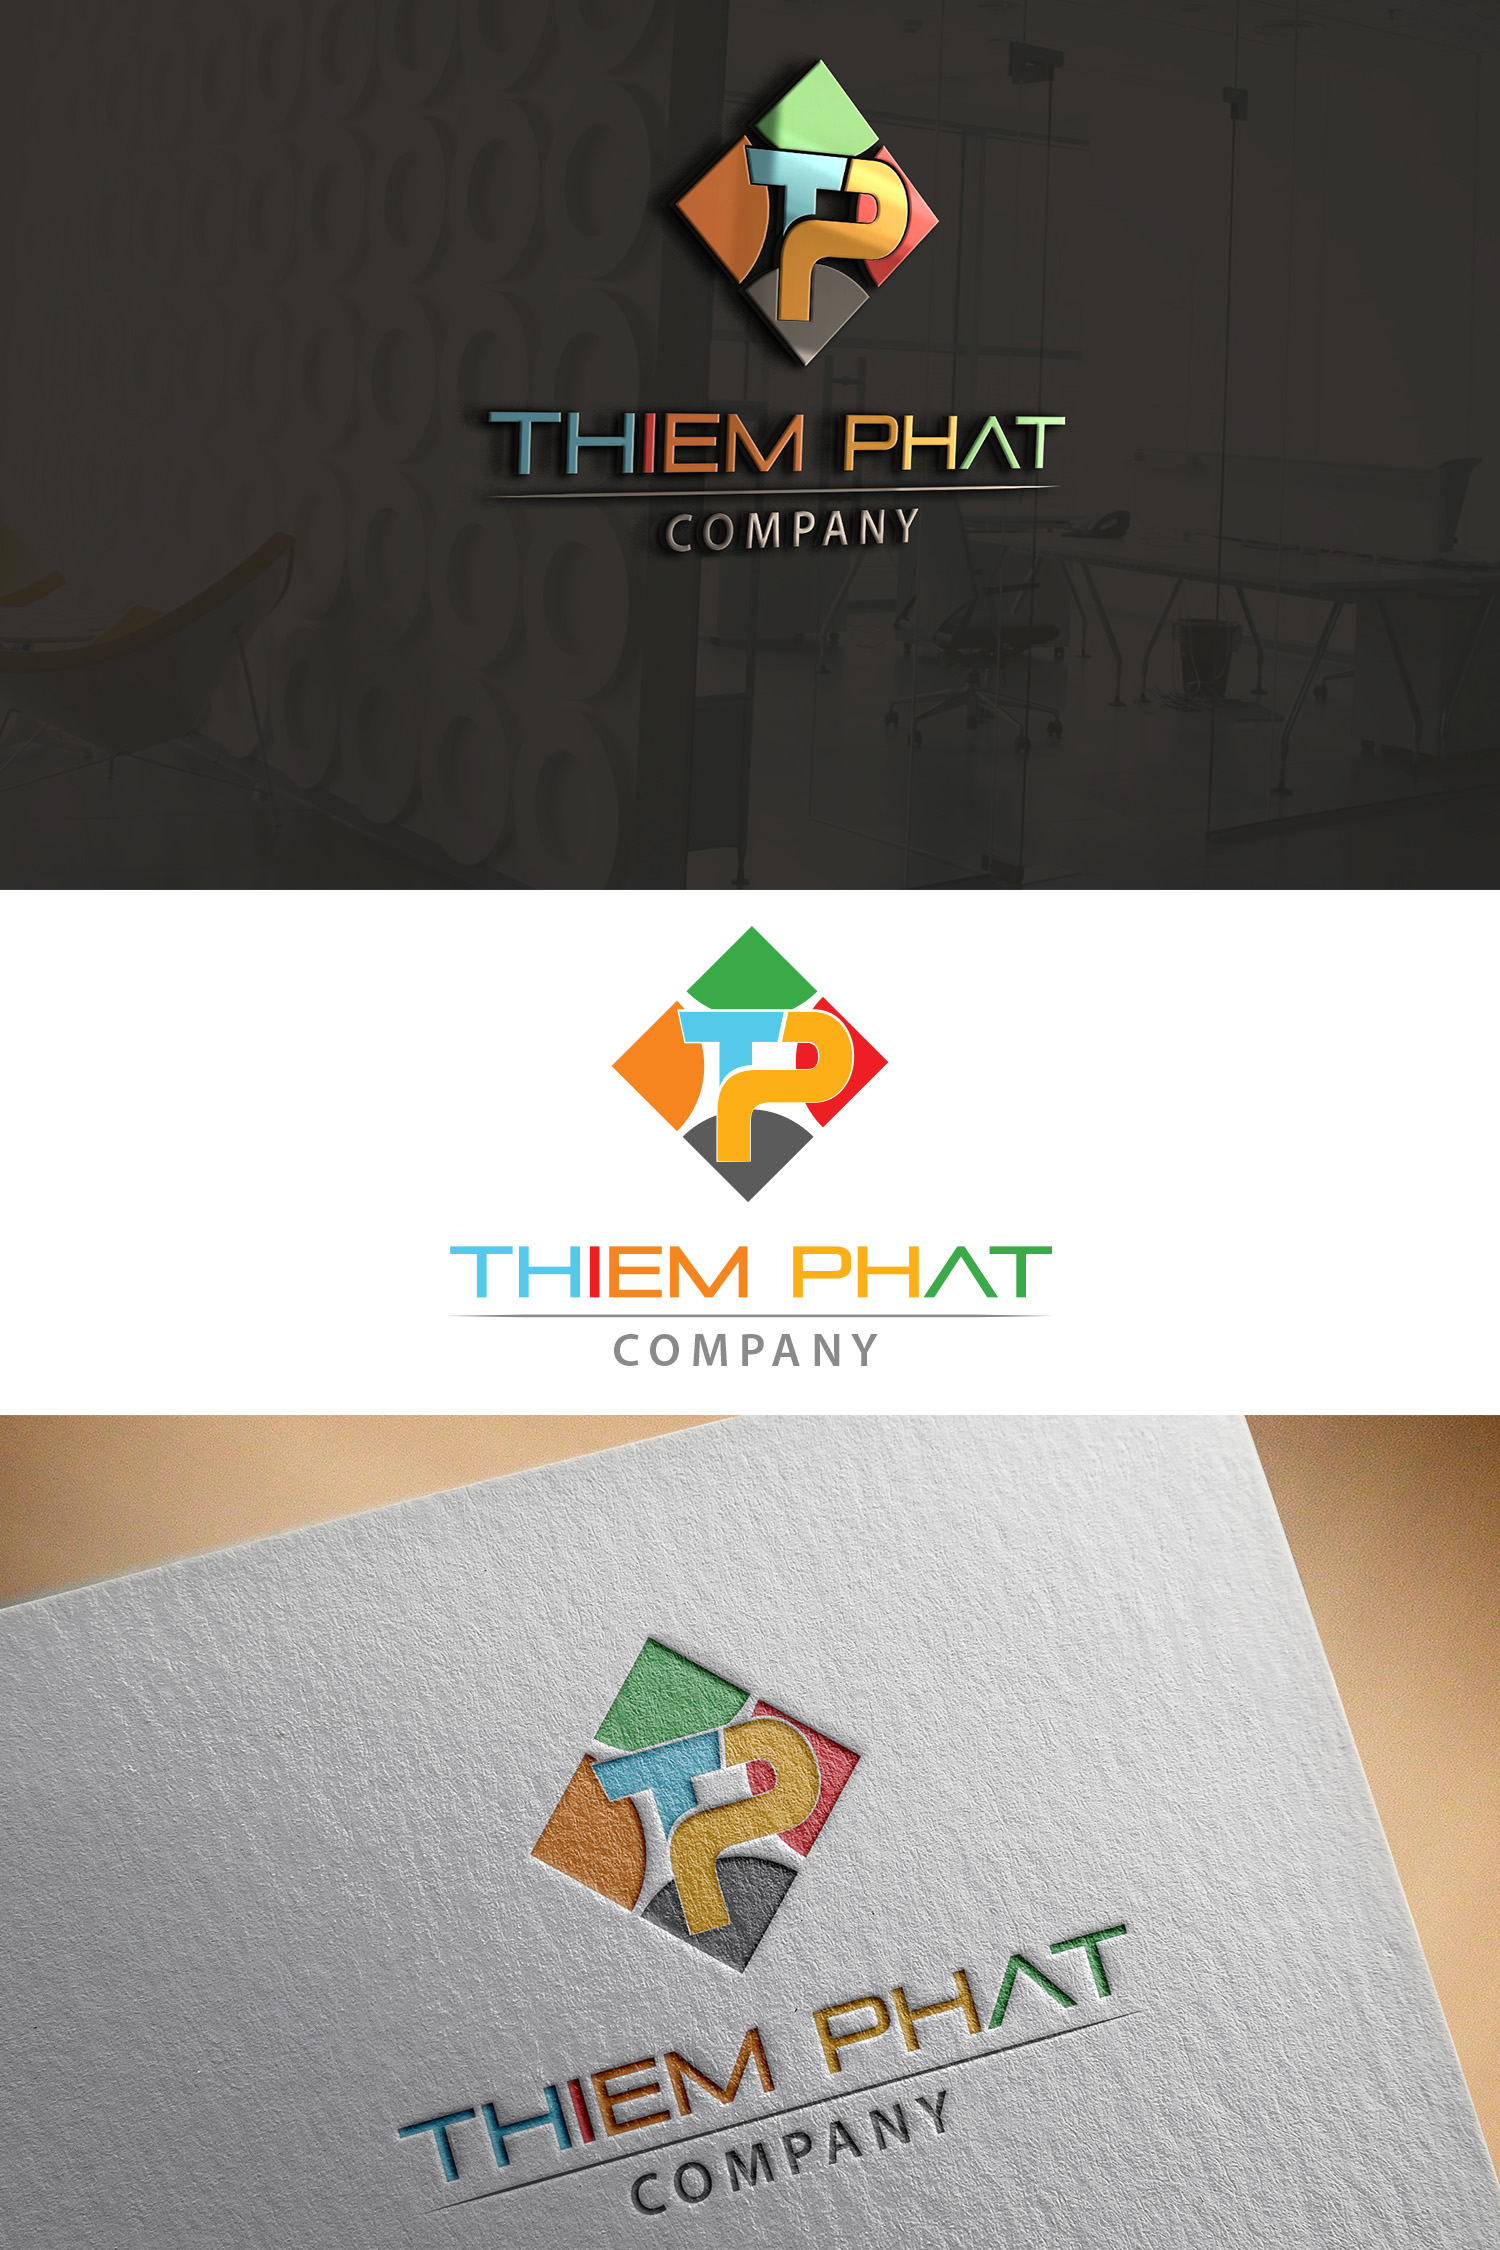 Logo Design by Umair ahmed Iqbal - Entry No. 194 in the Logo Design Contest New Logo Design for Thiem Phat company.